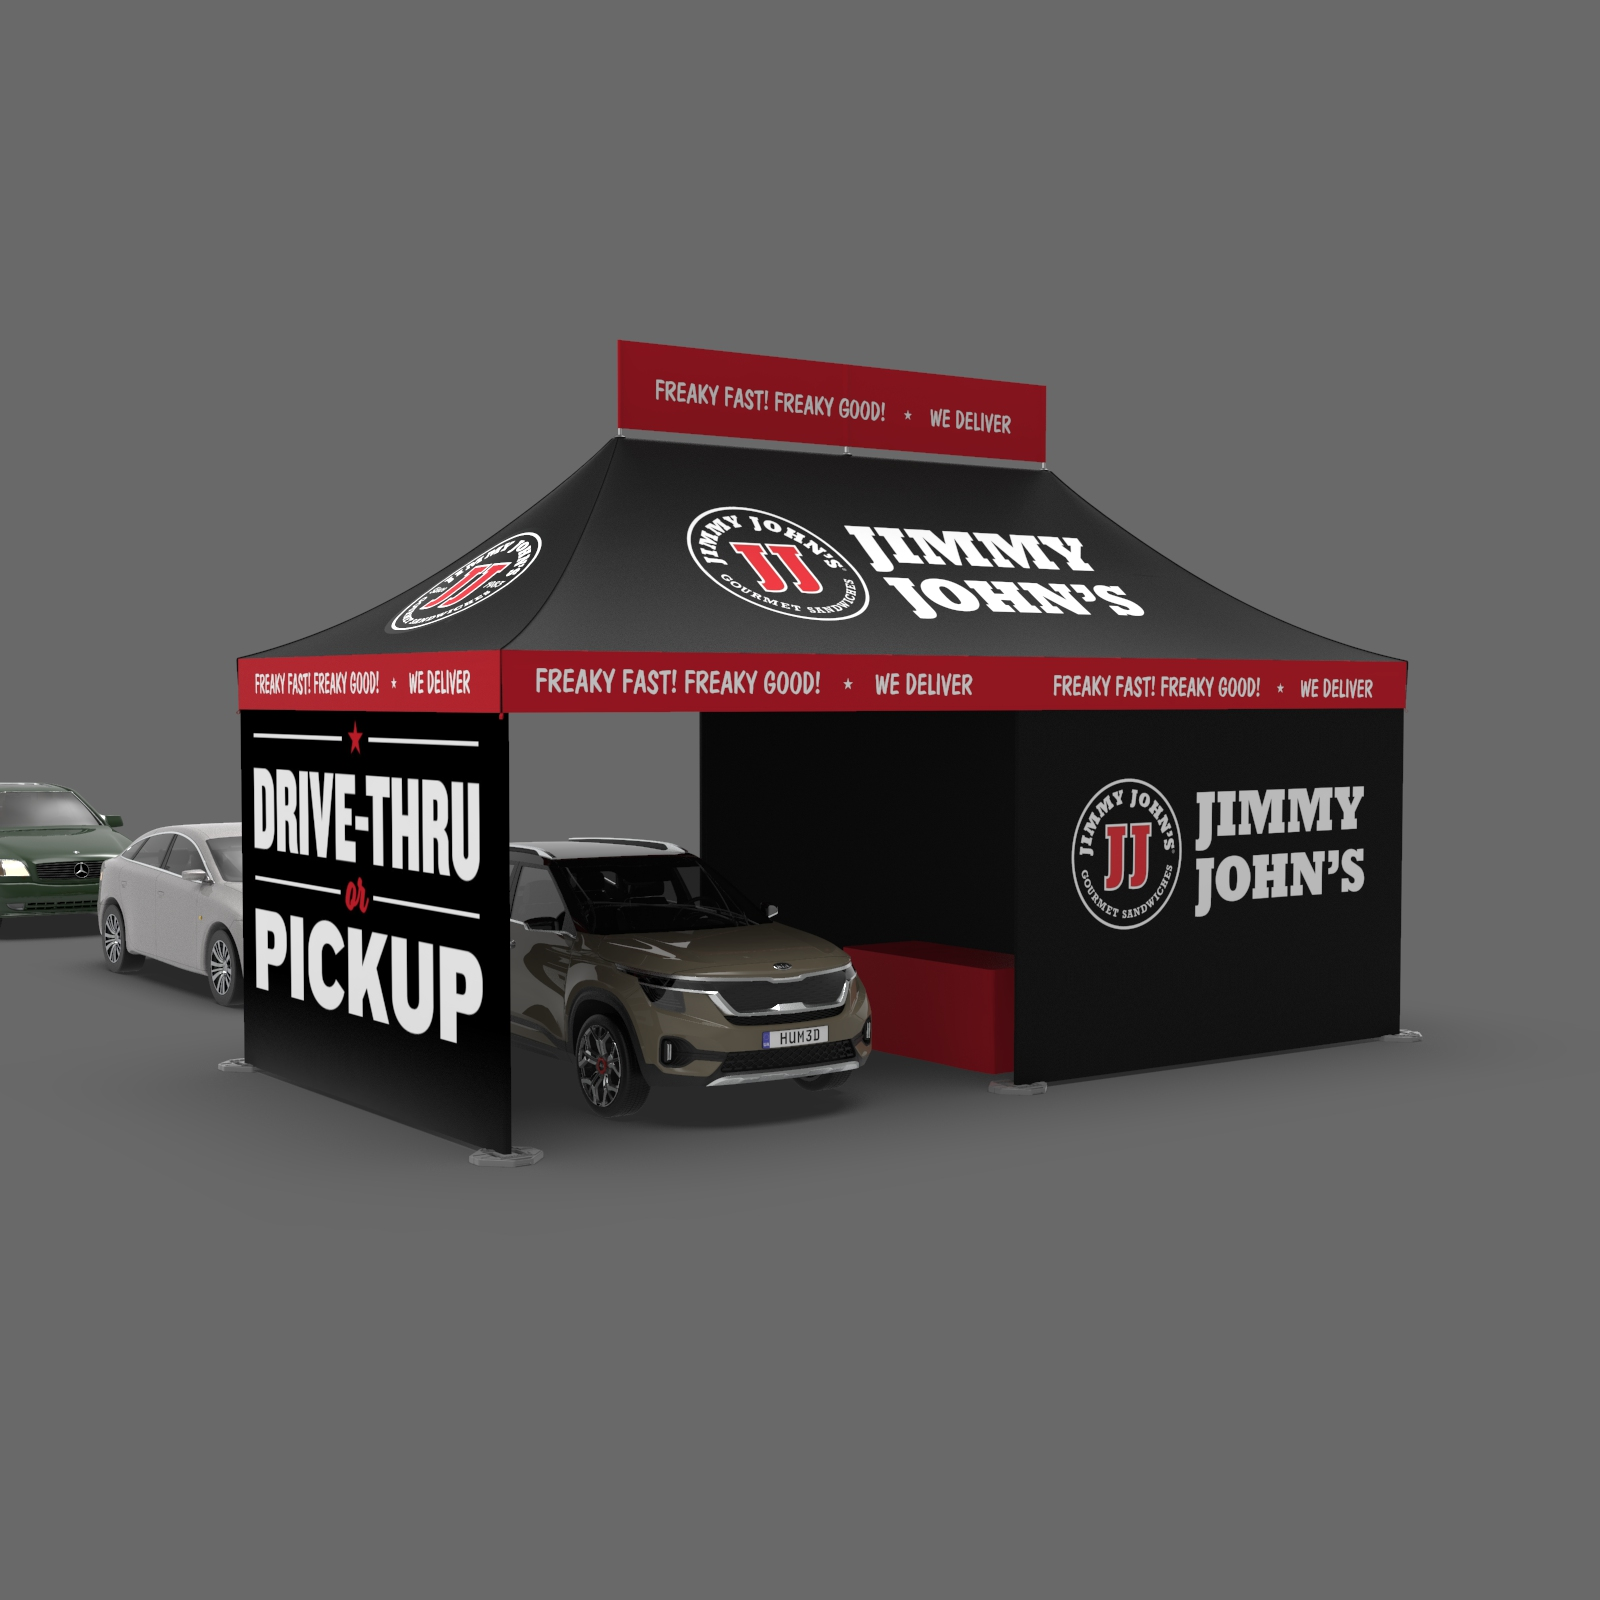 Jimmy Johns Drive Thru Pick Up Tent